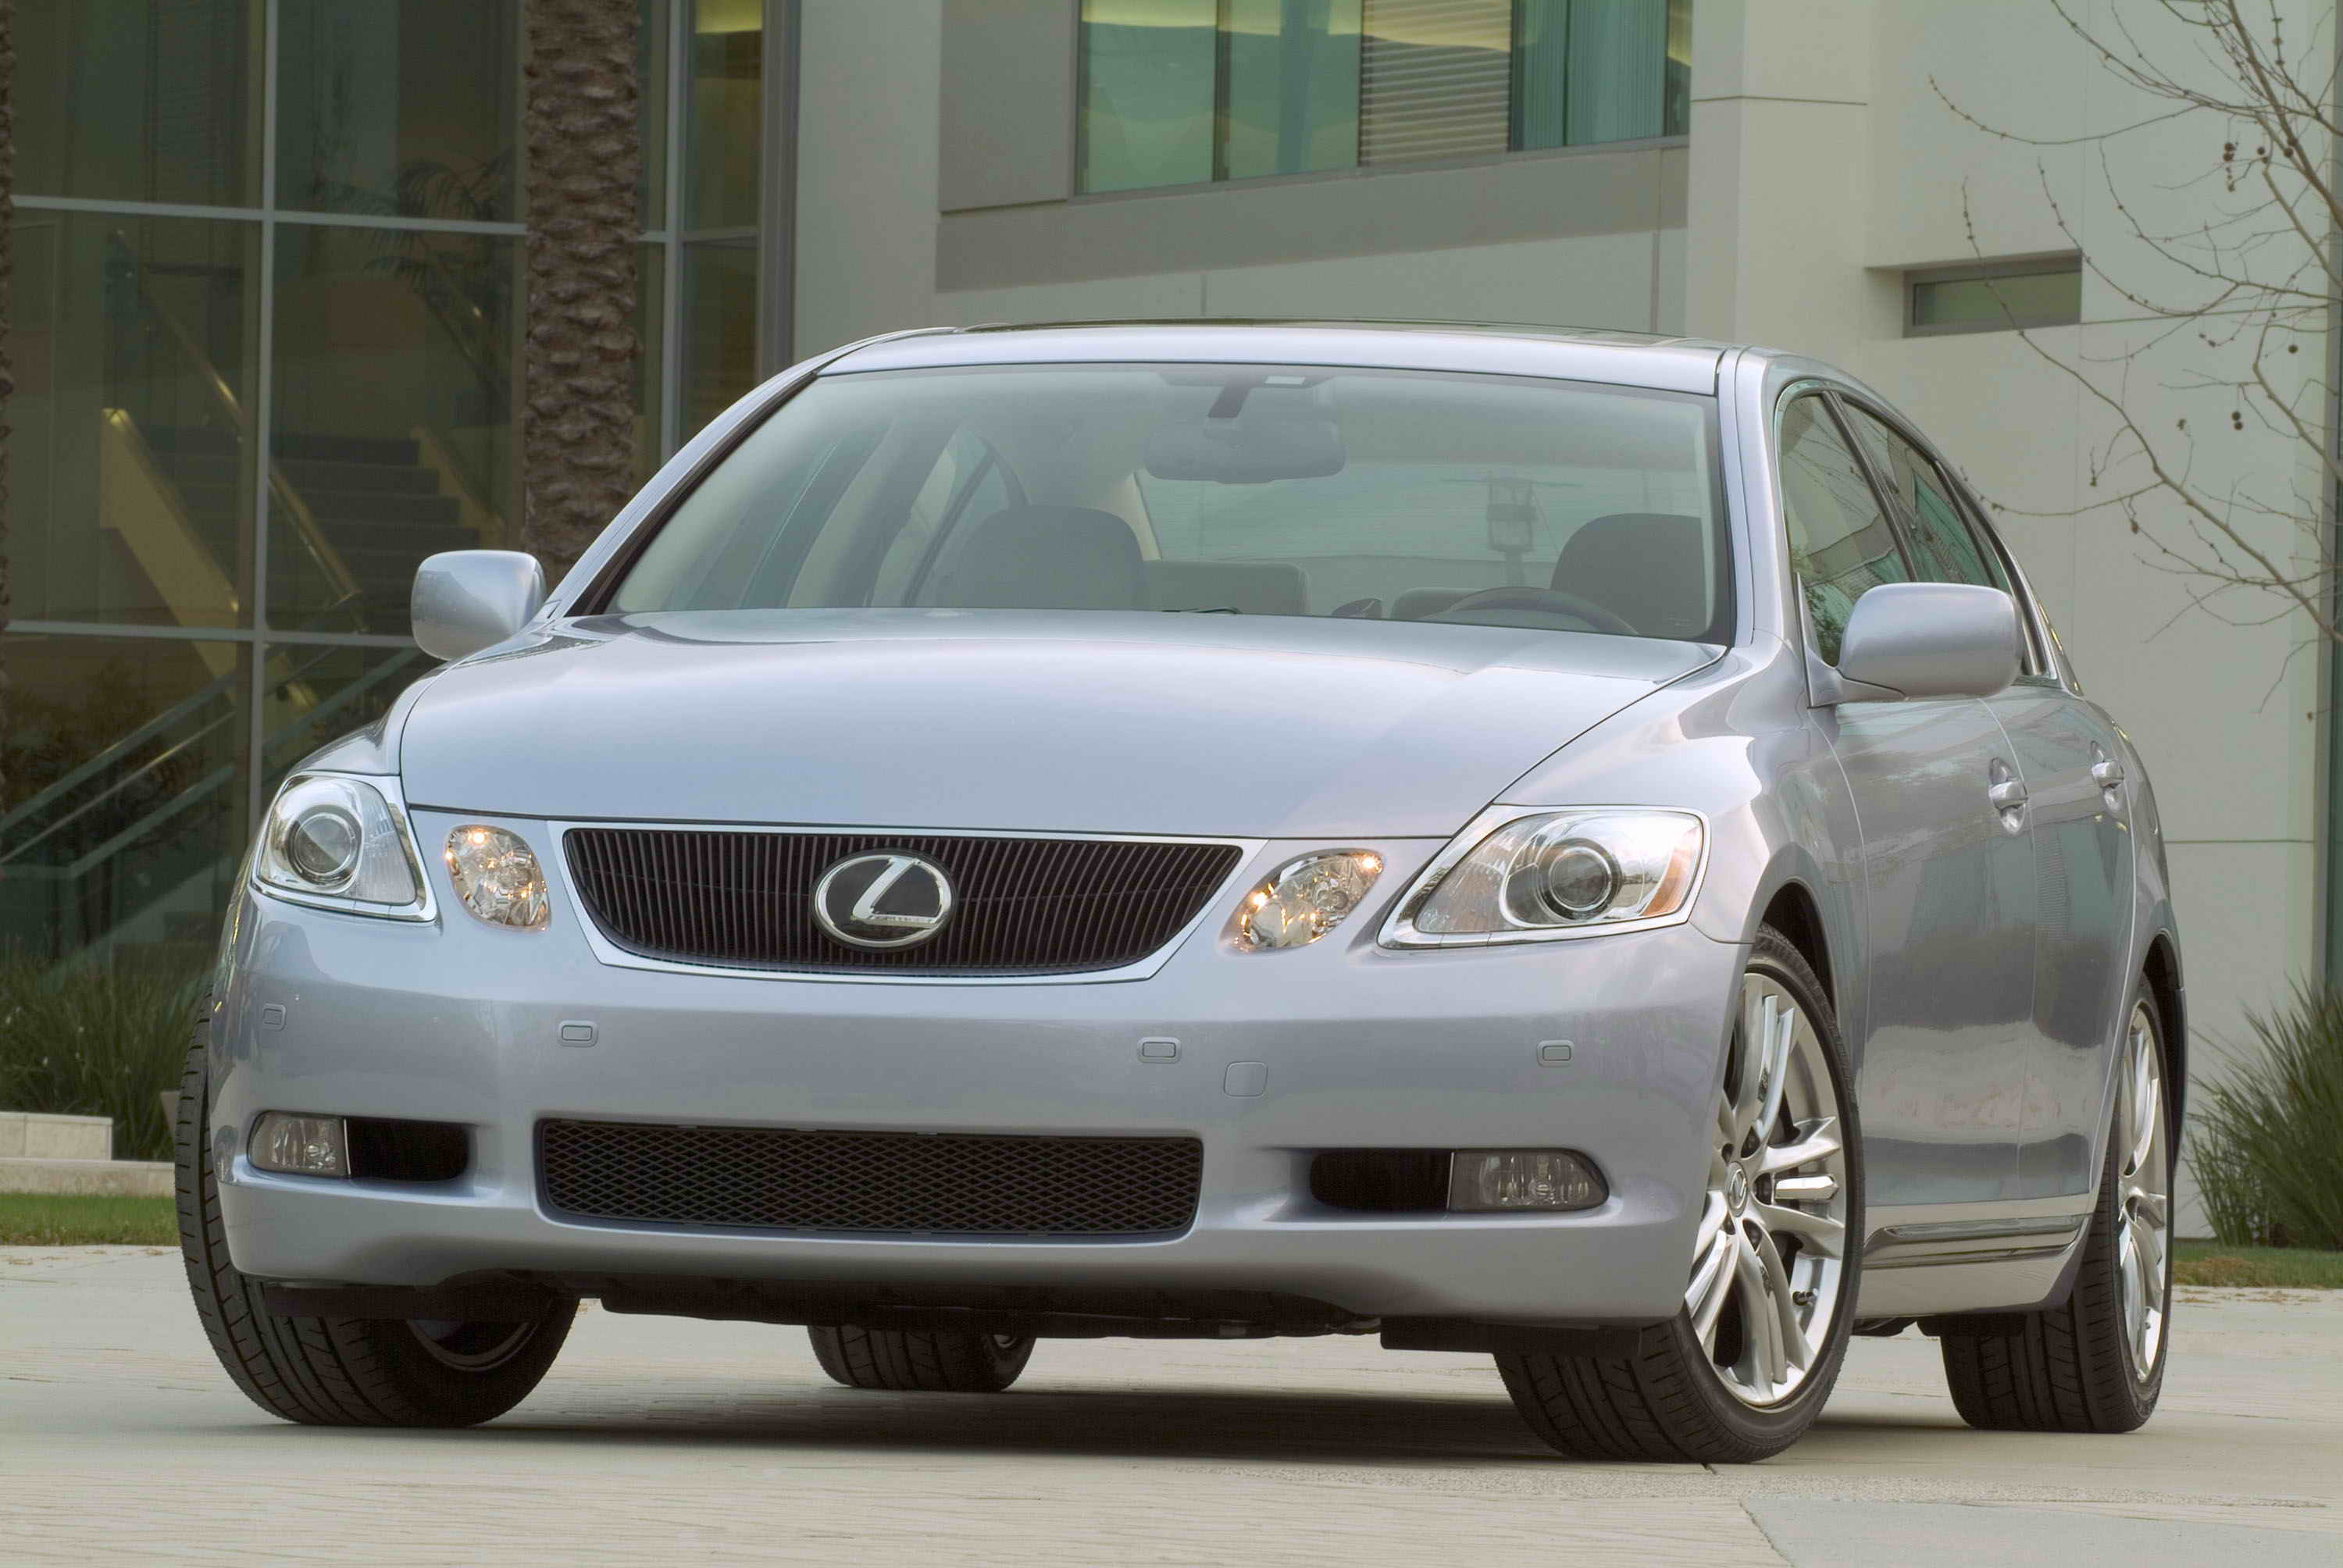 2007 lexus gs 450h full hybrid technology pictures photos wallpapers top speed. Black Bedroom Furniture Sets. Home Design Ideas